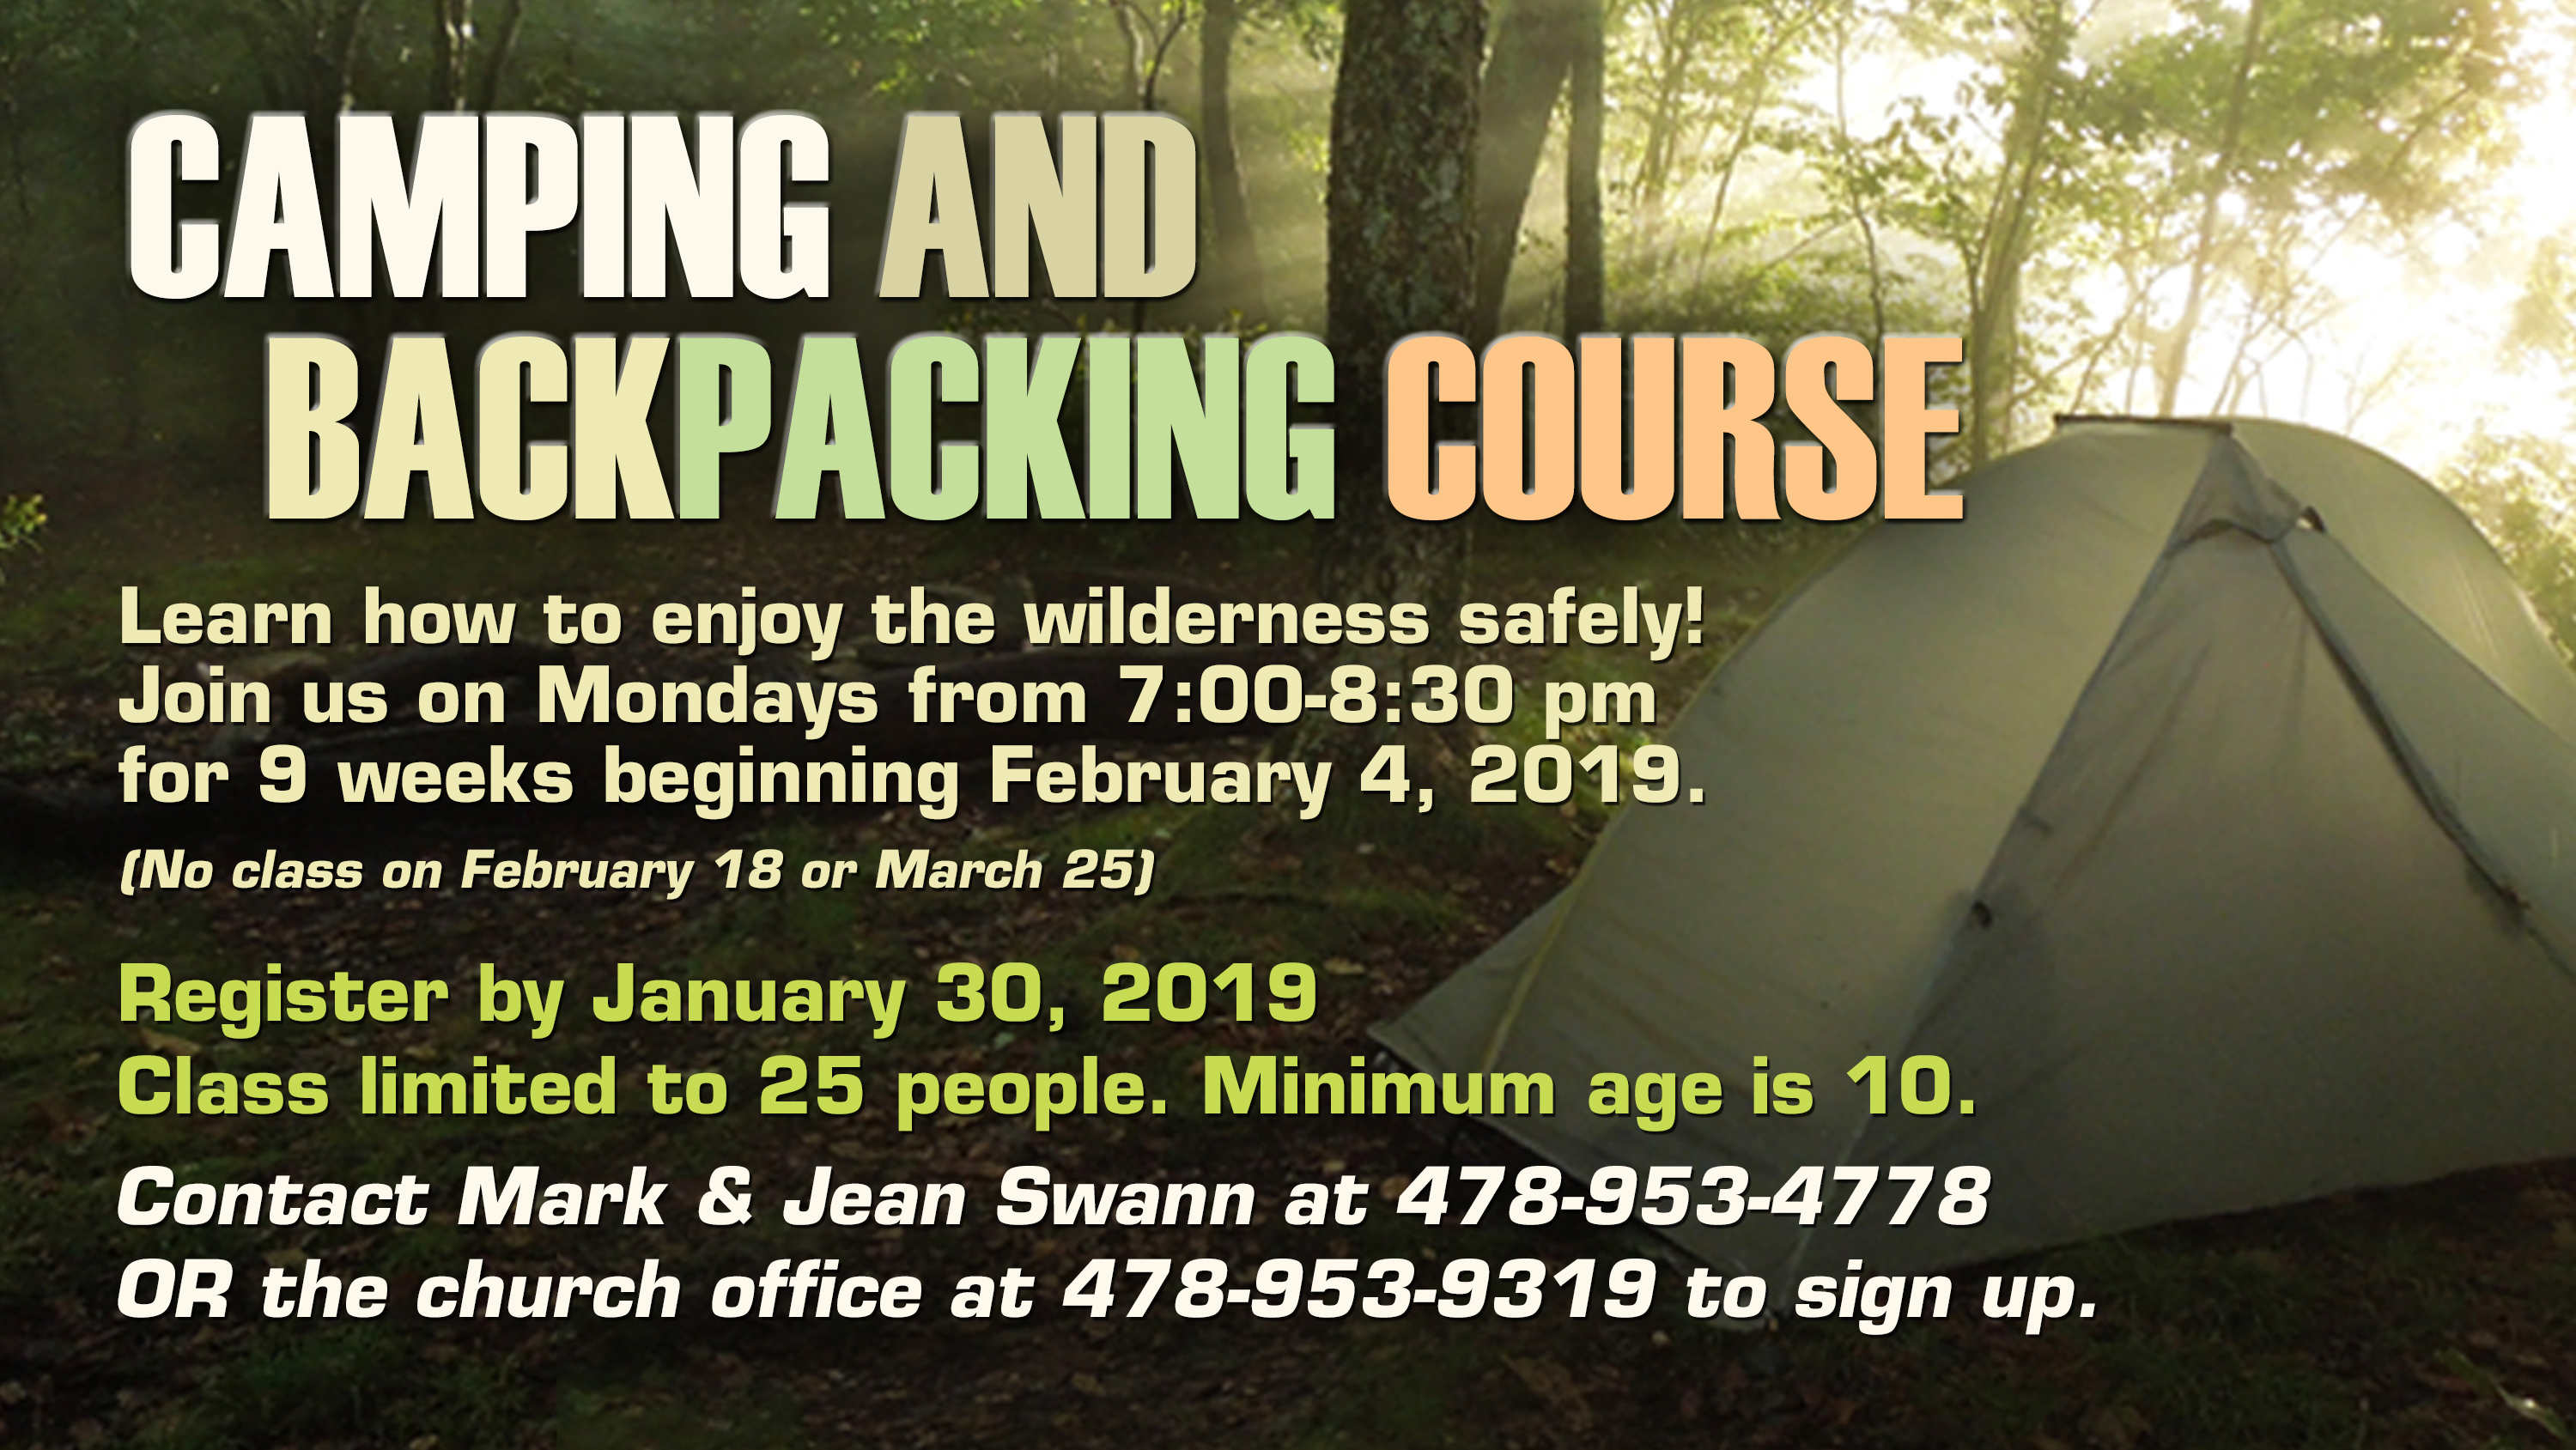 9.1  Camping and Backpacking Class ad